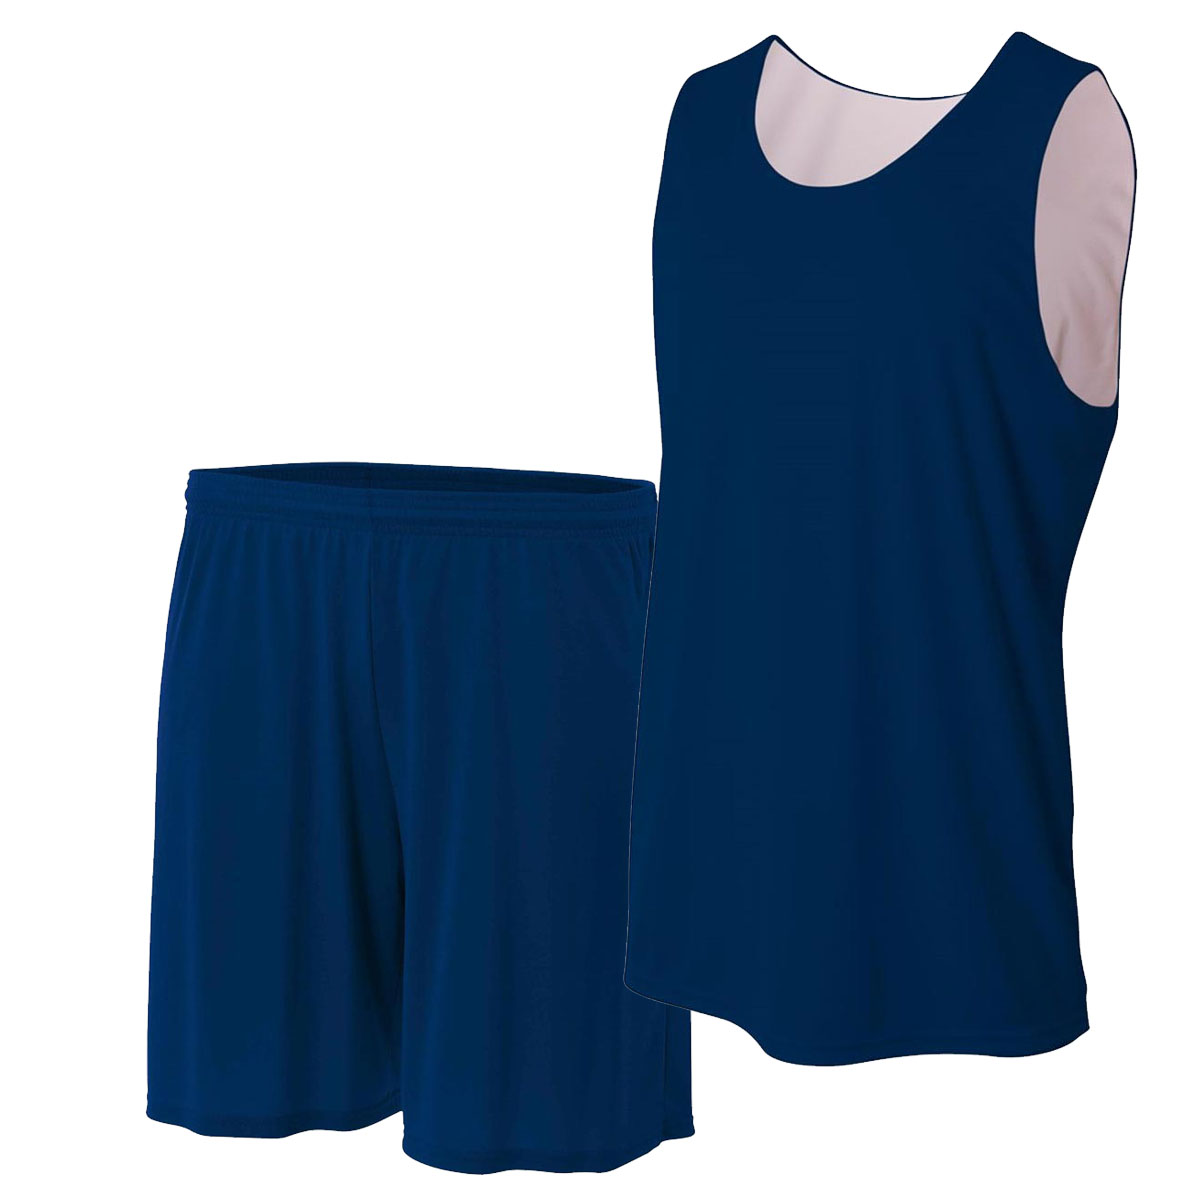 Reversible Basketball Uniforms Manufacturers in Durgapur